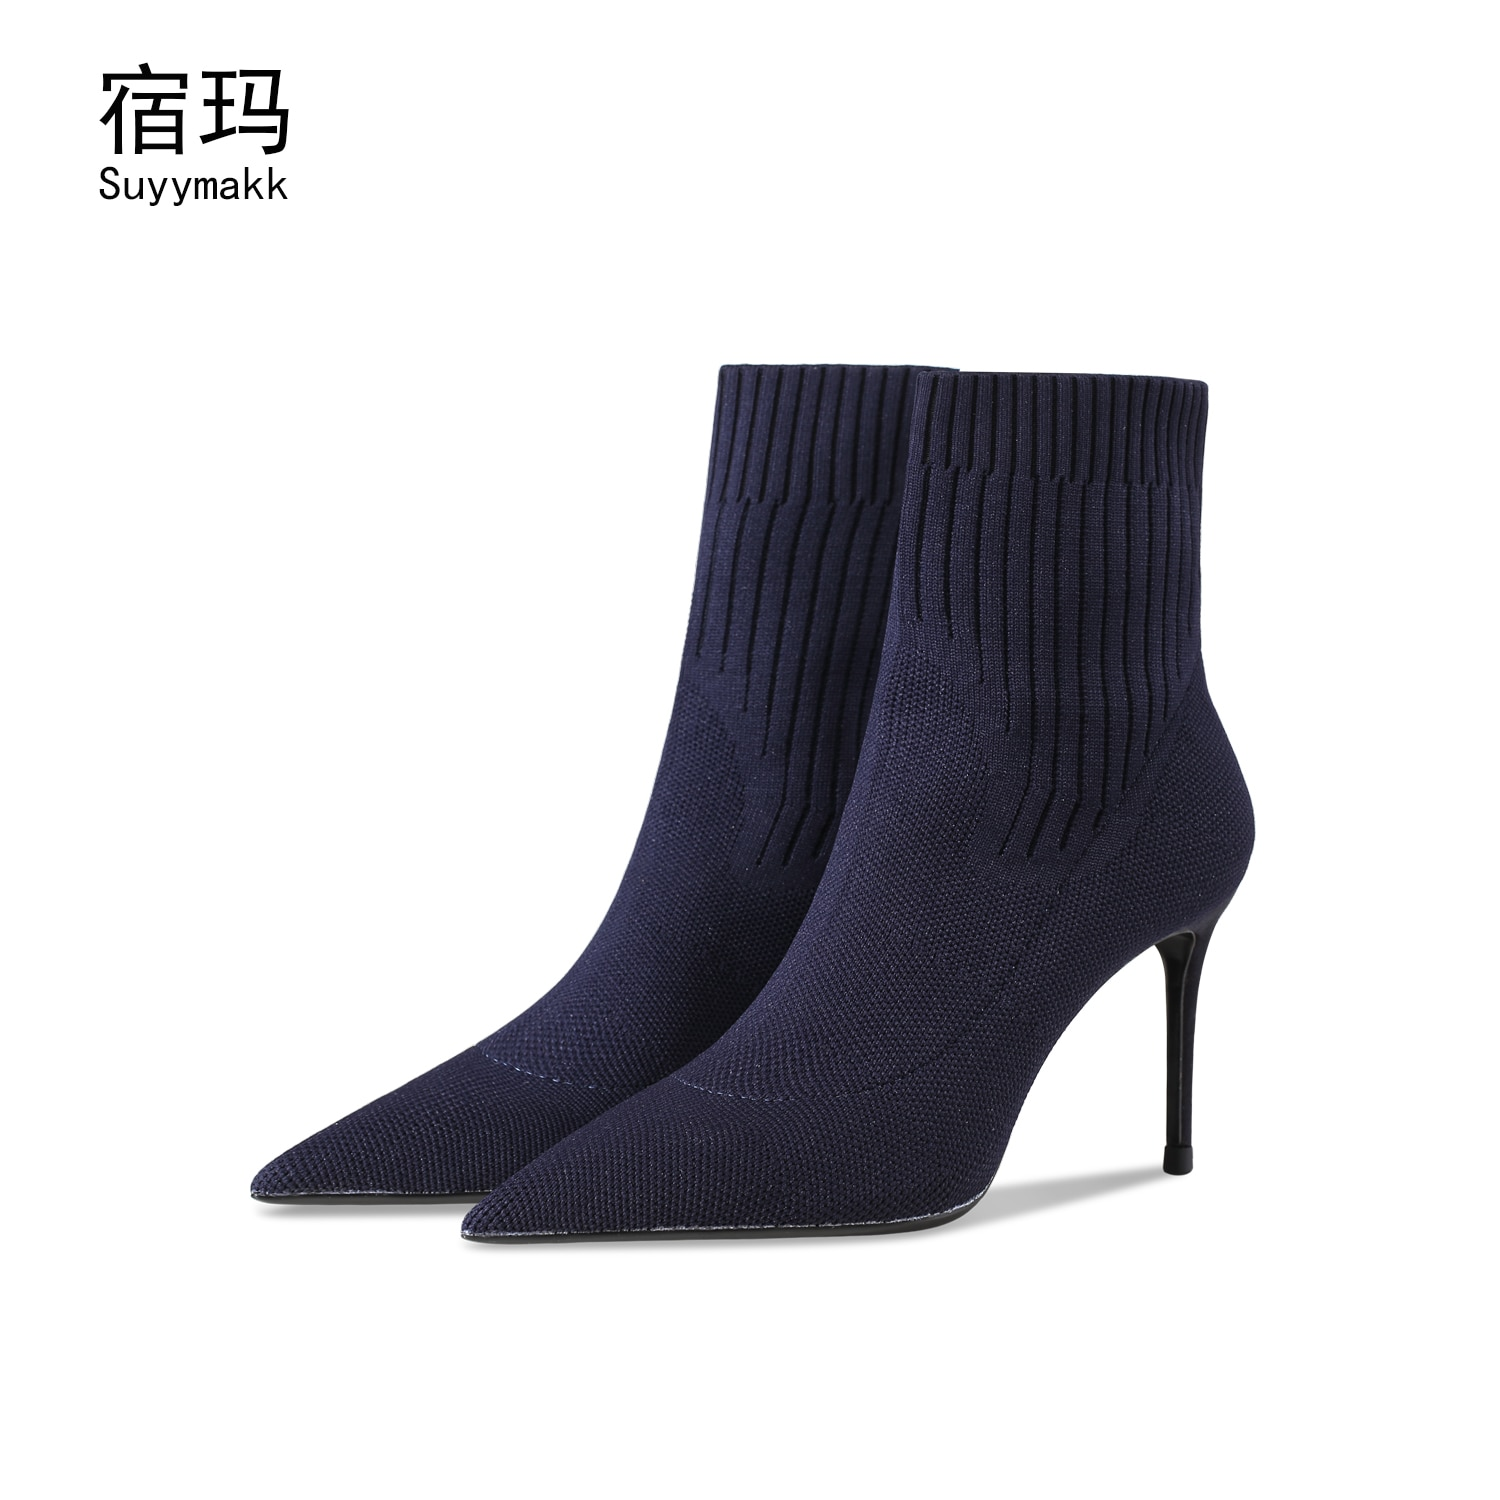 newest winter boots for women print flowers ankle boots pointed toe high heels boots 12 cm sexy stretch boots short dress shoes New Women High Heels Boots Pointed Toe Fabric Elastic Socks Boots Sexy Stilettos Shoes For Woman 2021 Fashion Short Boots 6/8cm